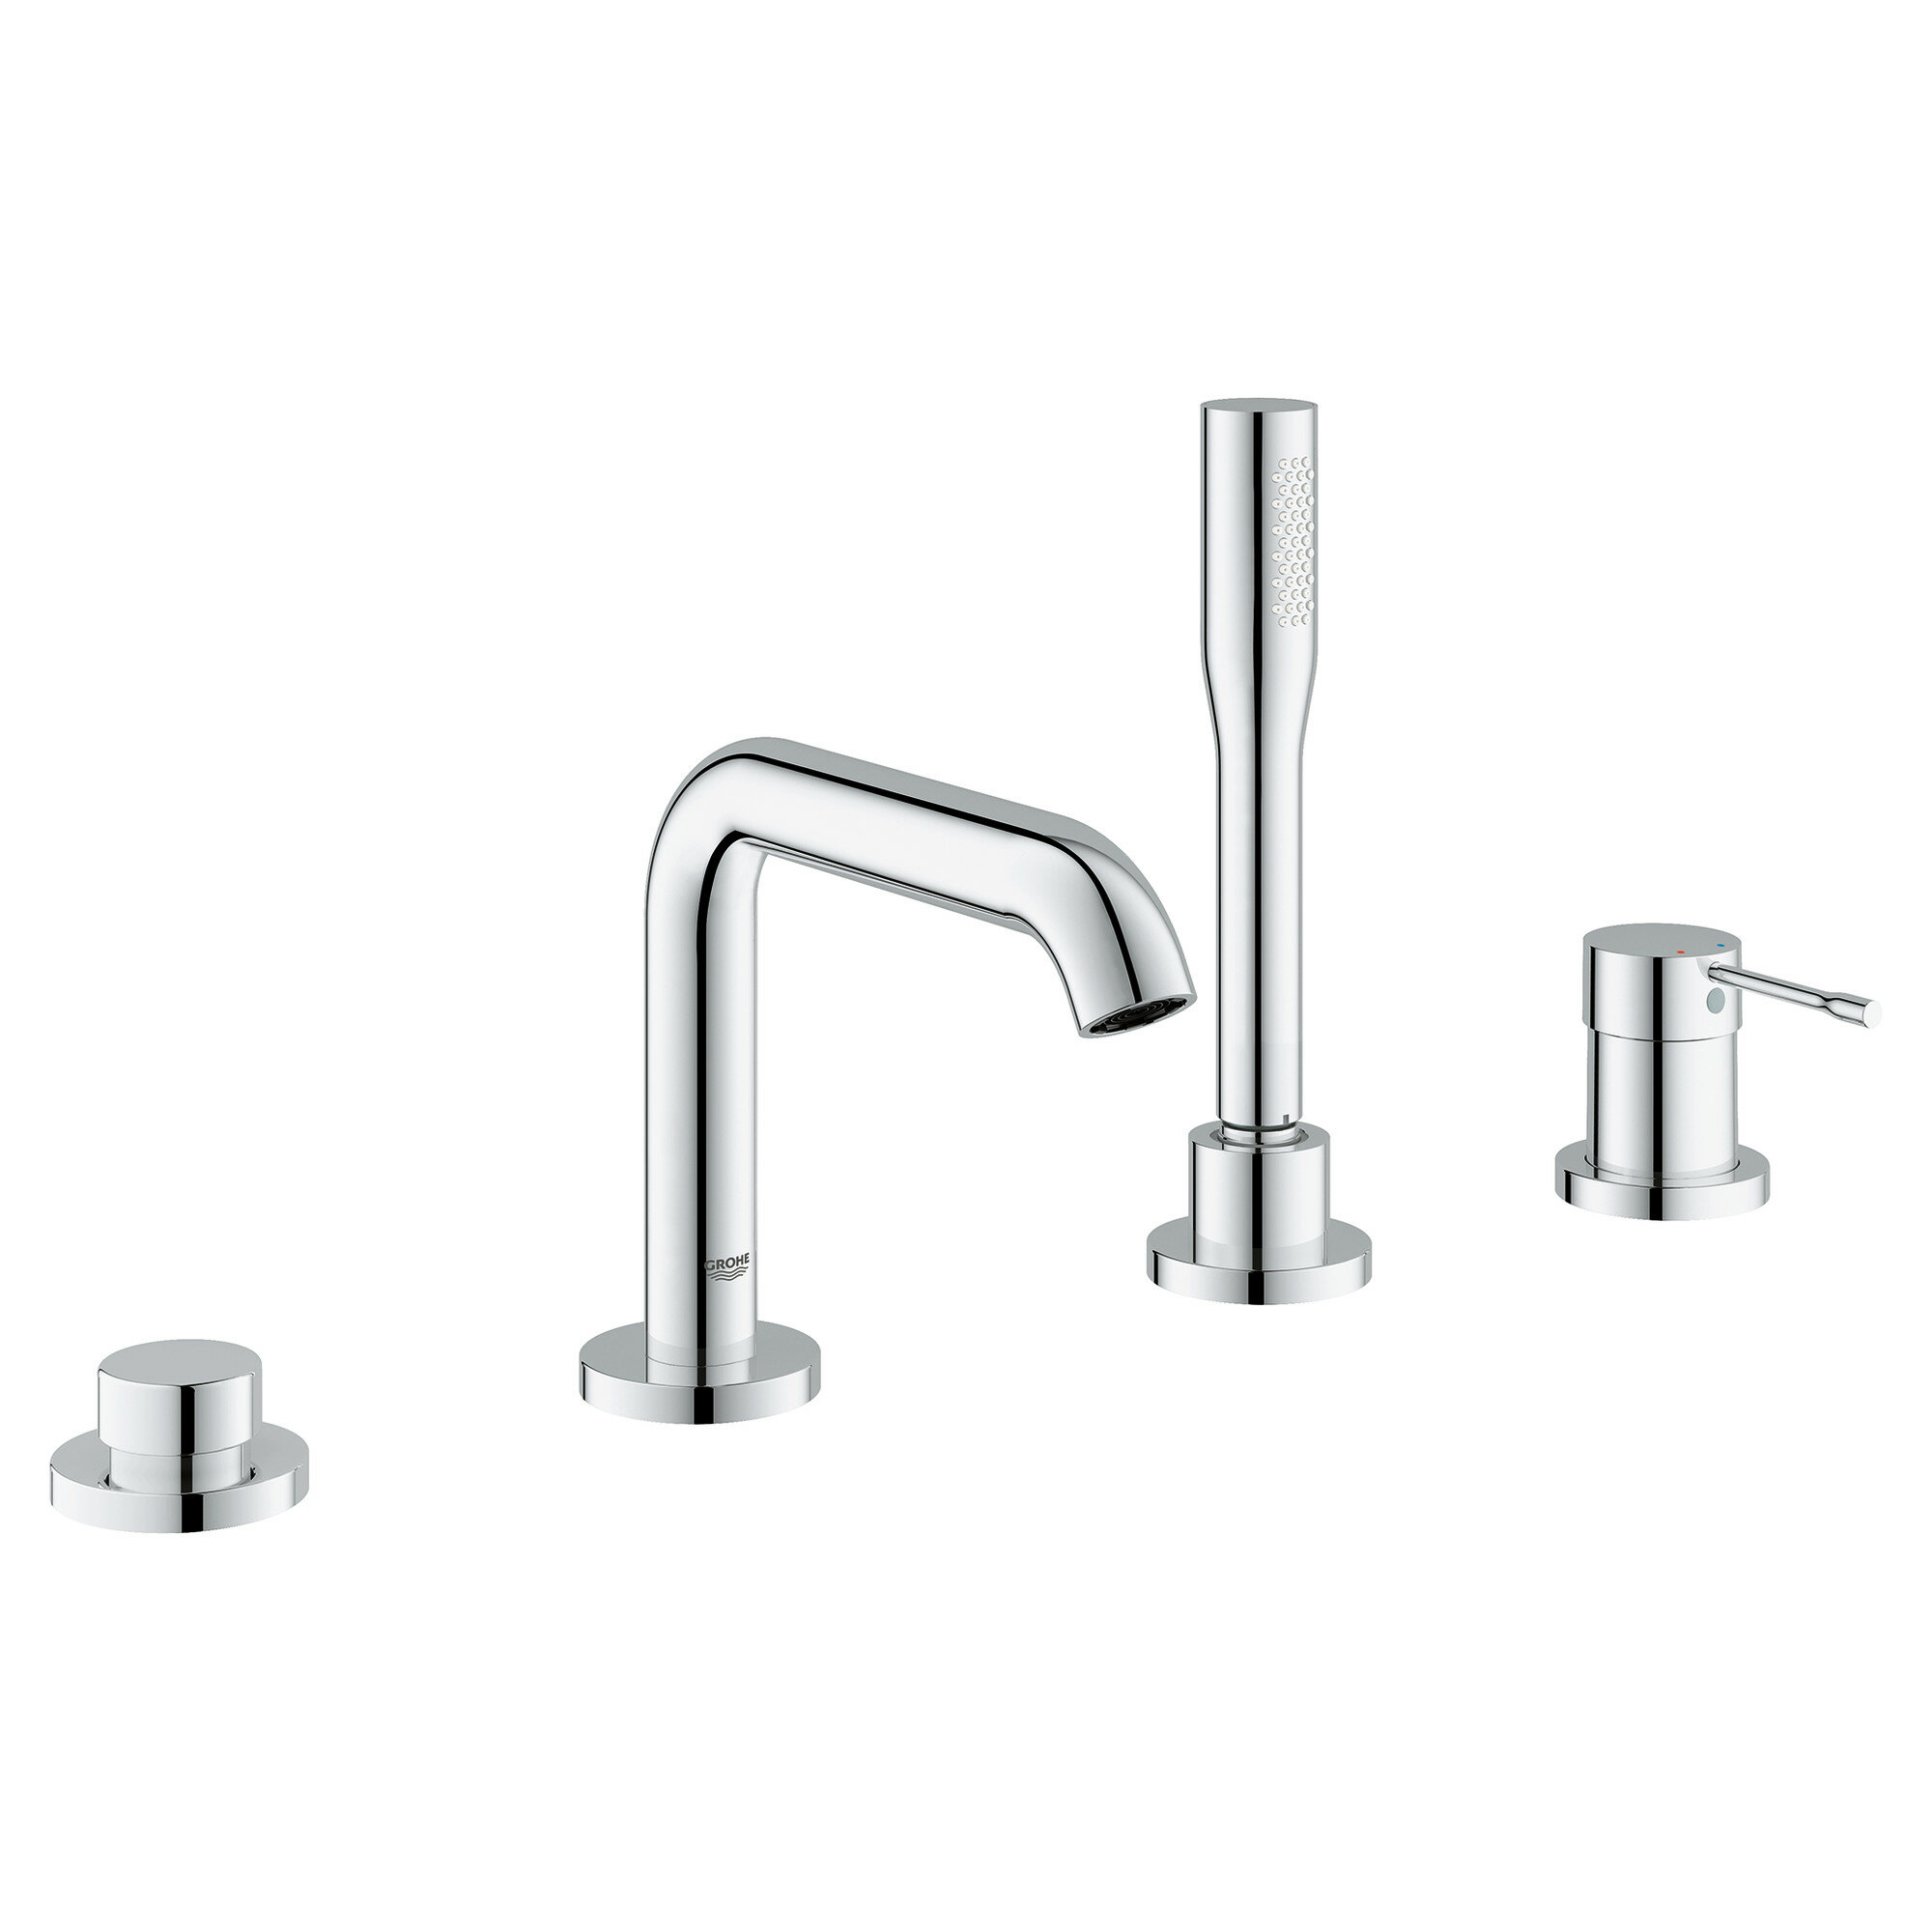 Grohe Essence New Single Handle Deck Mounted Tub Filler Trim with ...